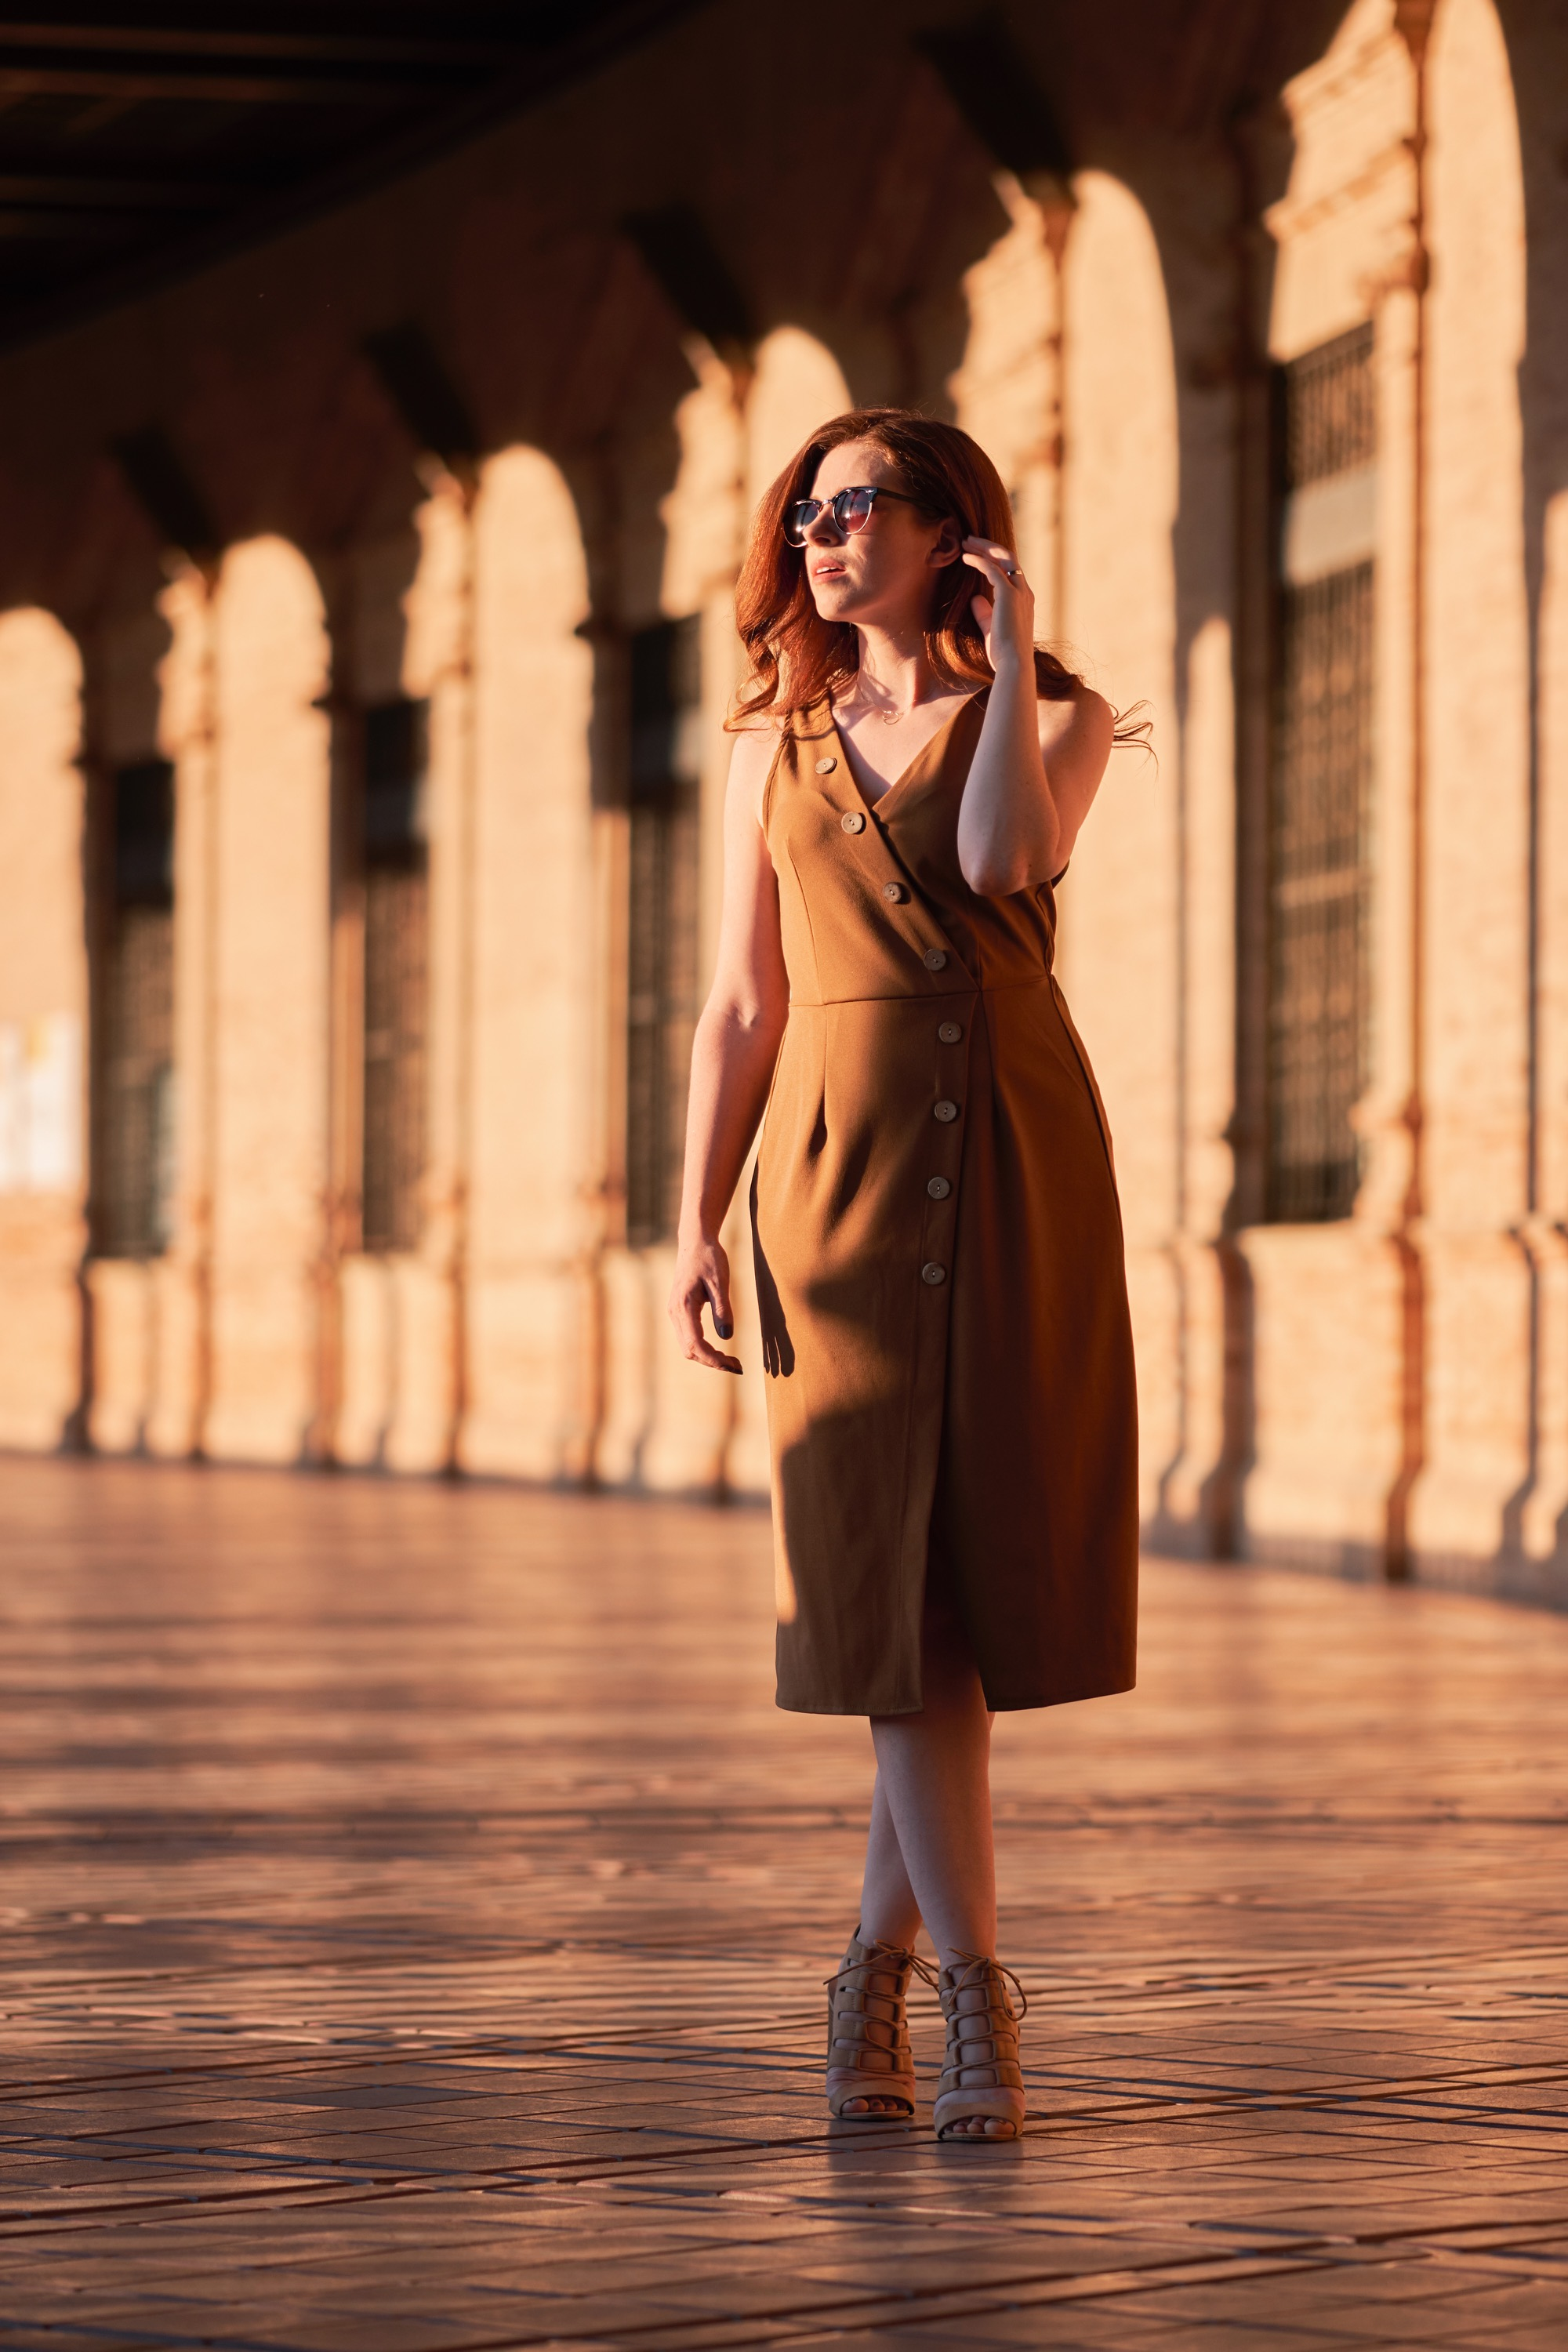 - This dress is a versatile addition to any holiday wardrobe - dress it down with flats during the day or add heels and accessories to elevate it for the evening. Bonus points for being able to layer it with a roll neck & tights when its chillier at home!Dress: BoohooShoes: Primark